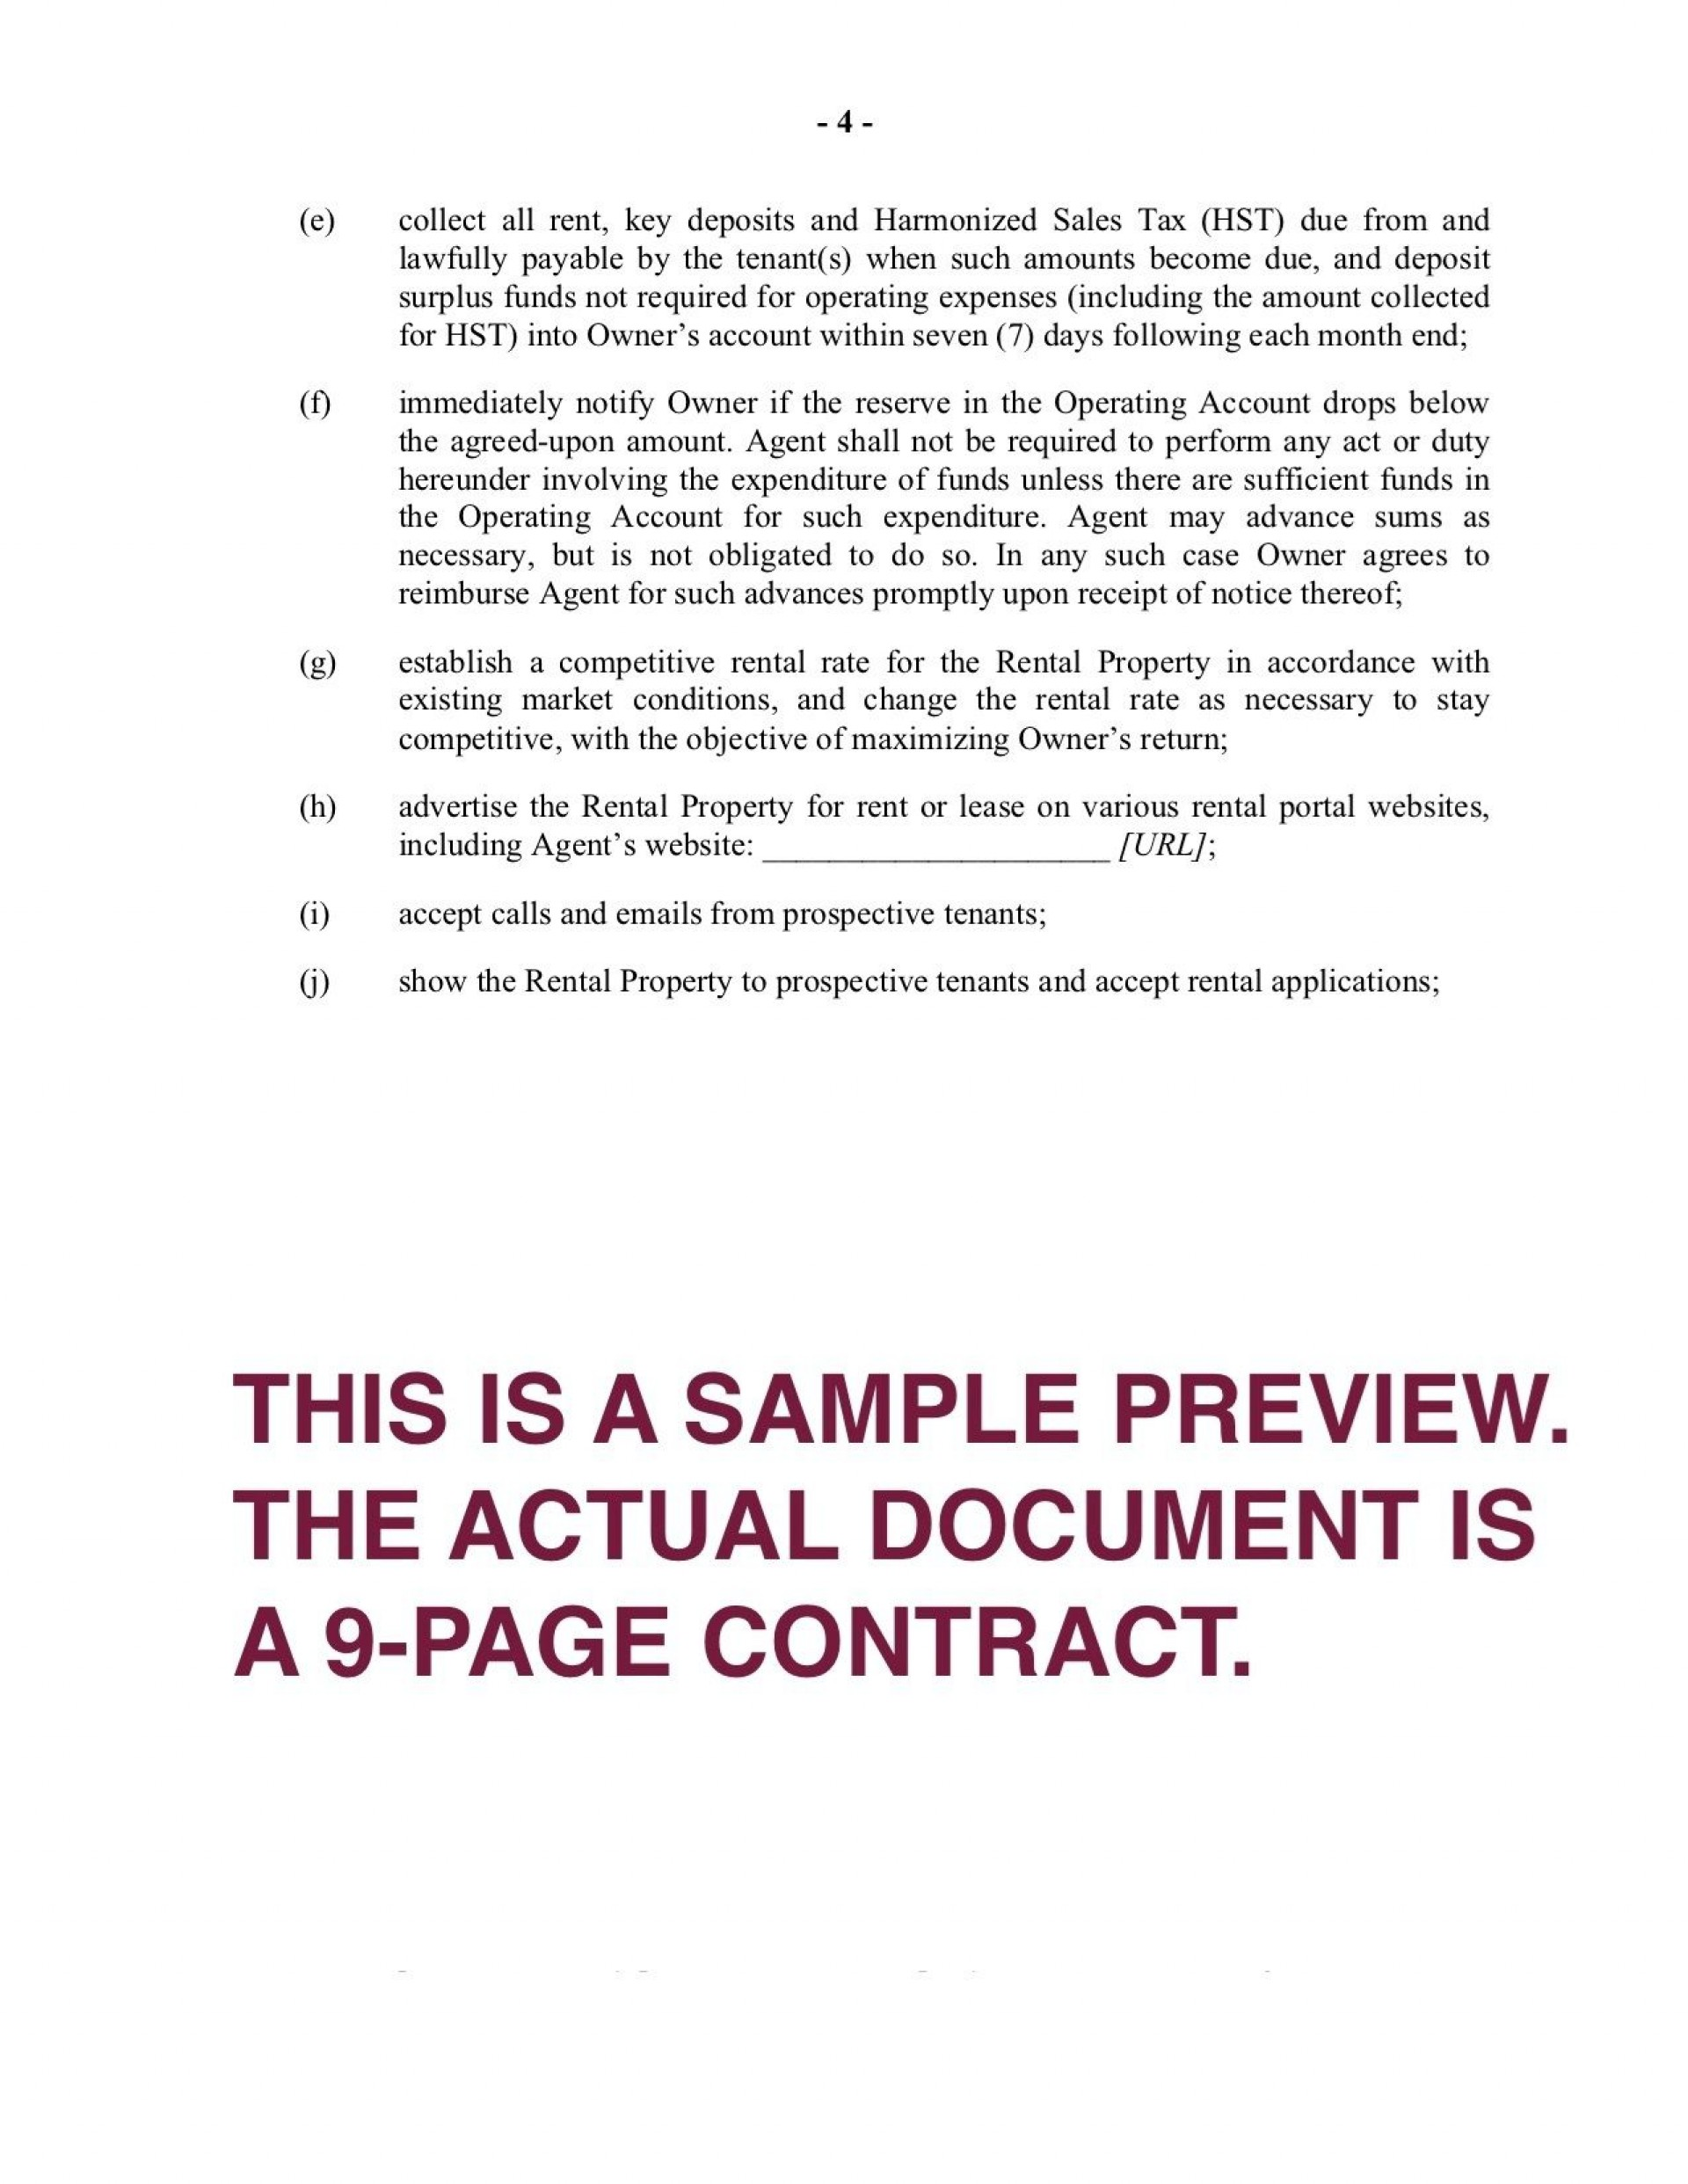 005 Stirring Property Management Contract Template Ontario Design 1920